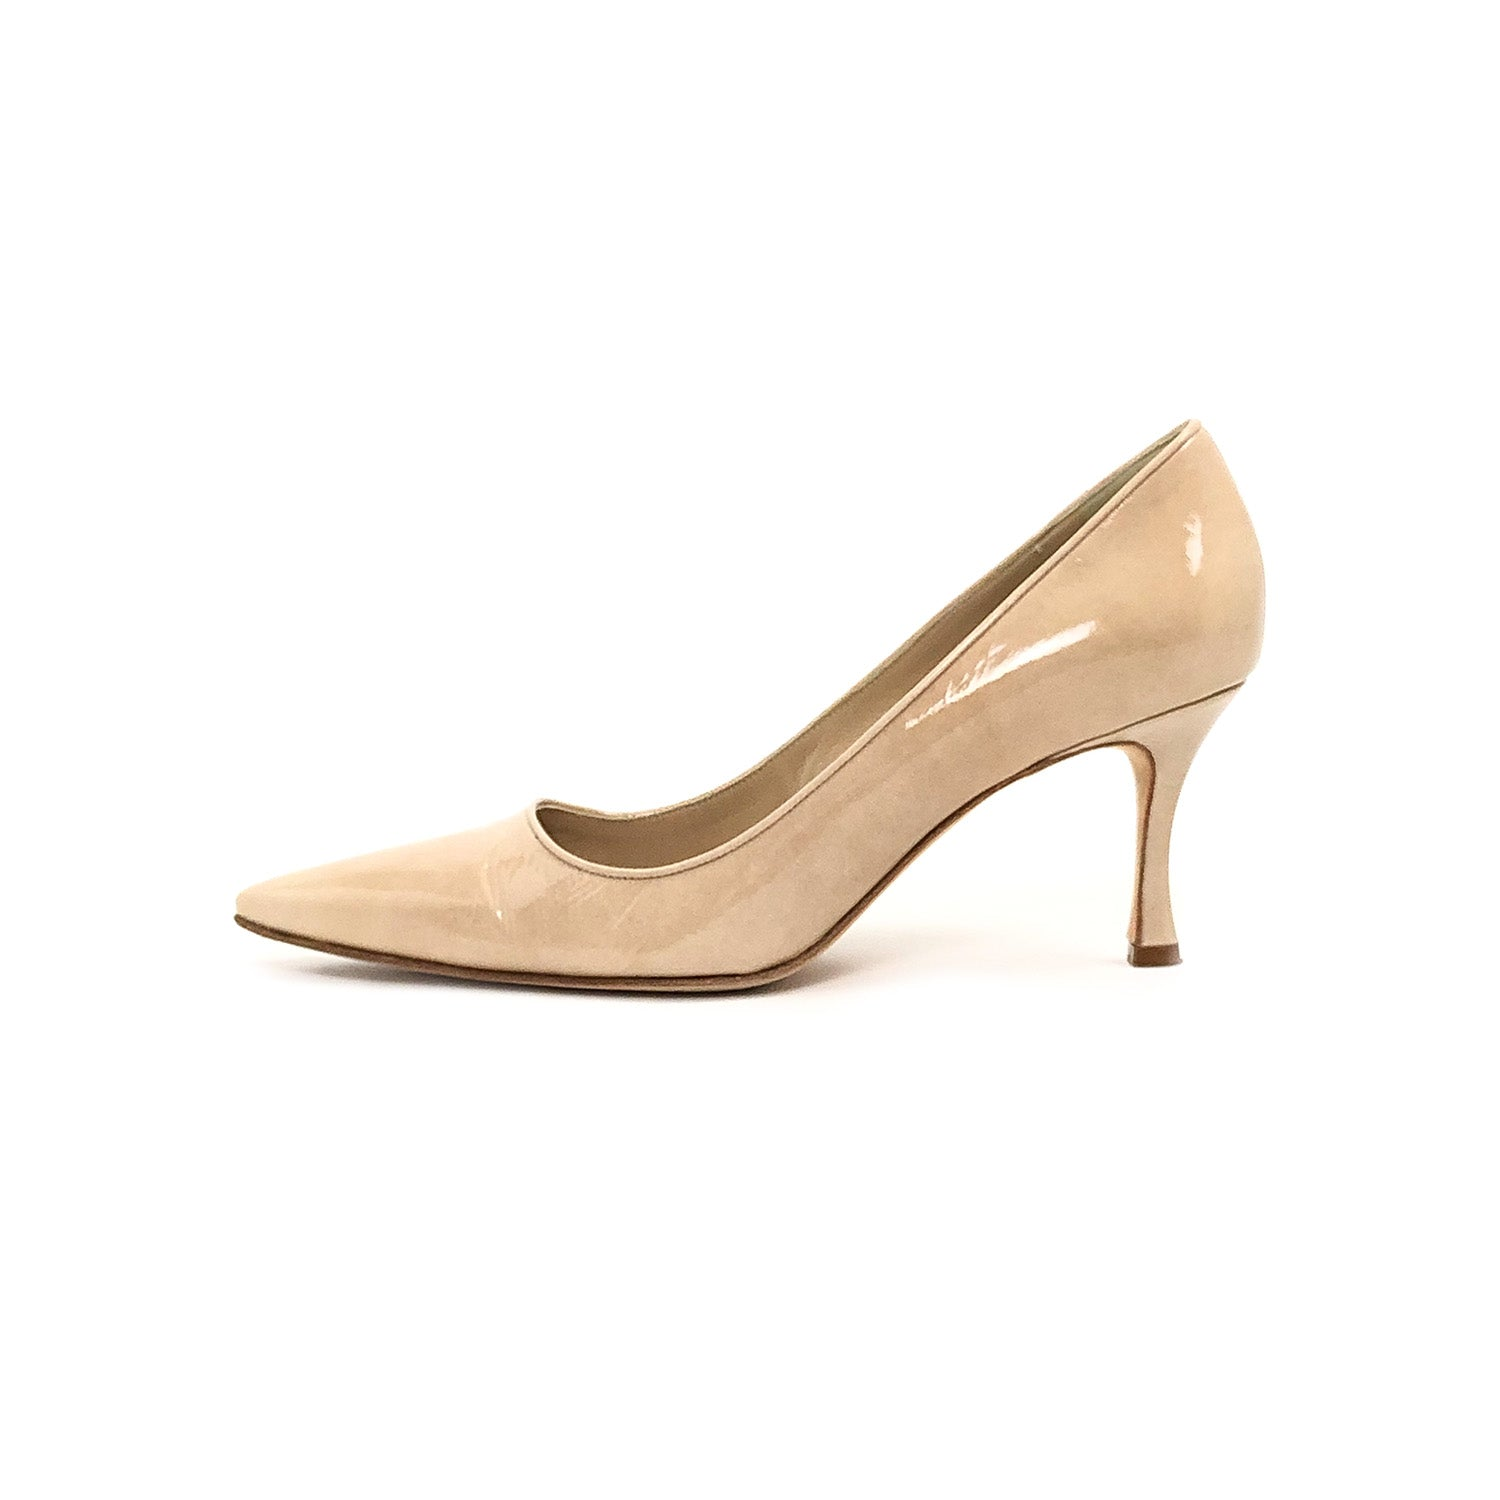 ladiesoflux - Manolo Blahnik Newcio Gala 70 Pump Fodera Rose, Size 7 - Ladies Of Lux - Shoes